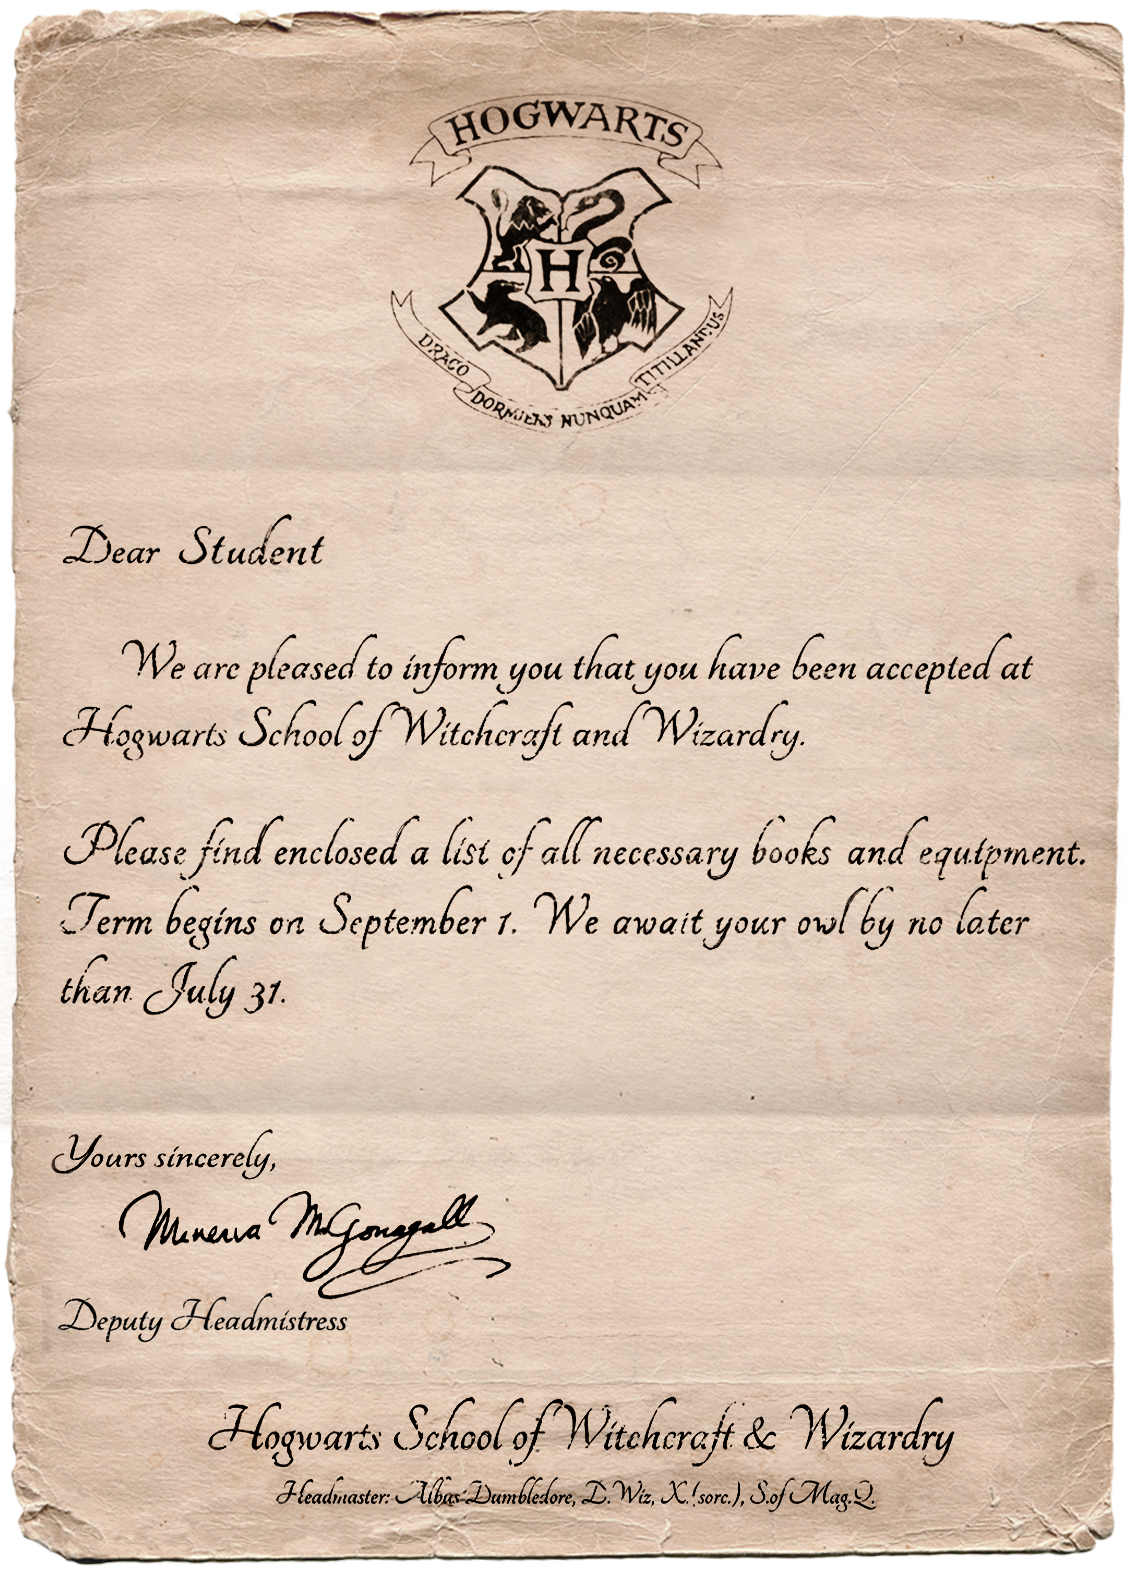 The invitation letter